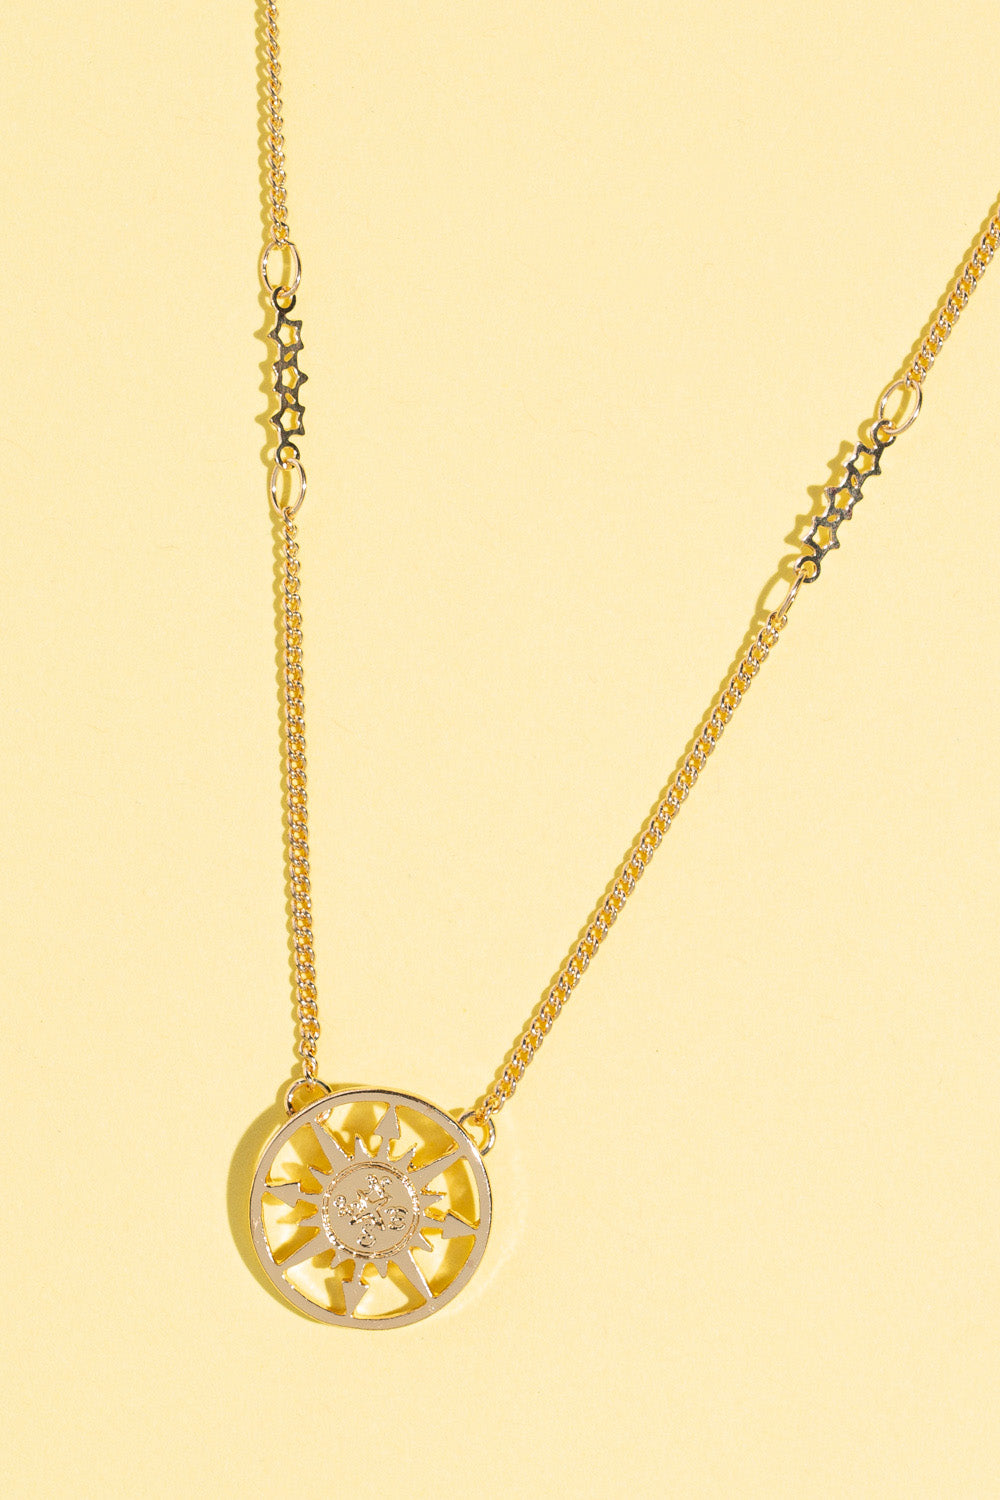 Type 1 Follow Your Inner Compass Necklace